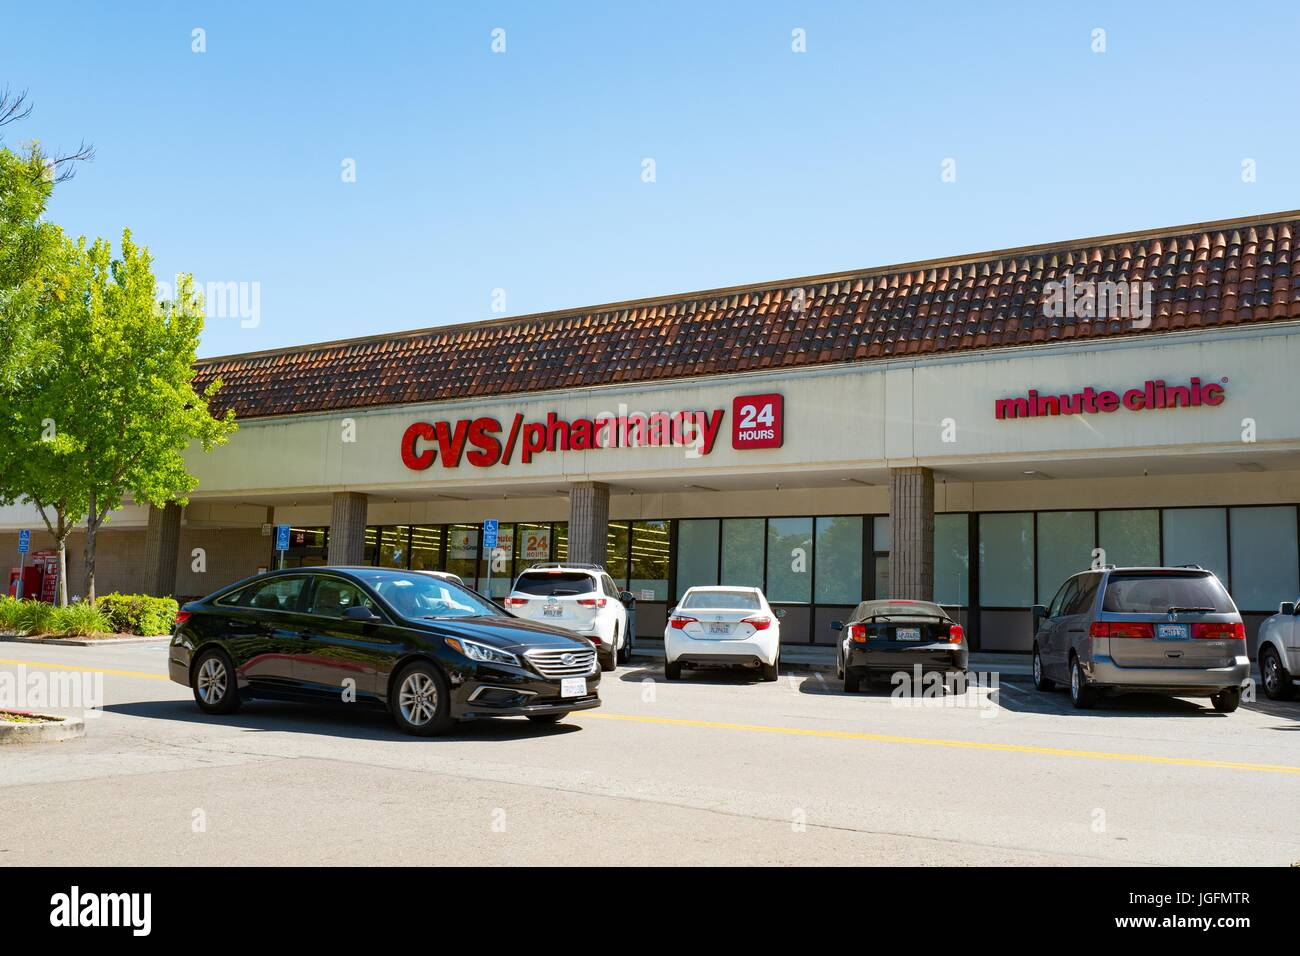 pharmacy in car stock photos  u0026 pharmacy in car stock images